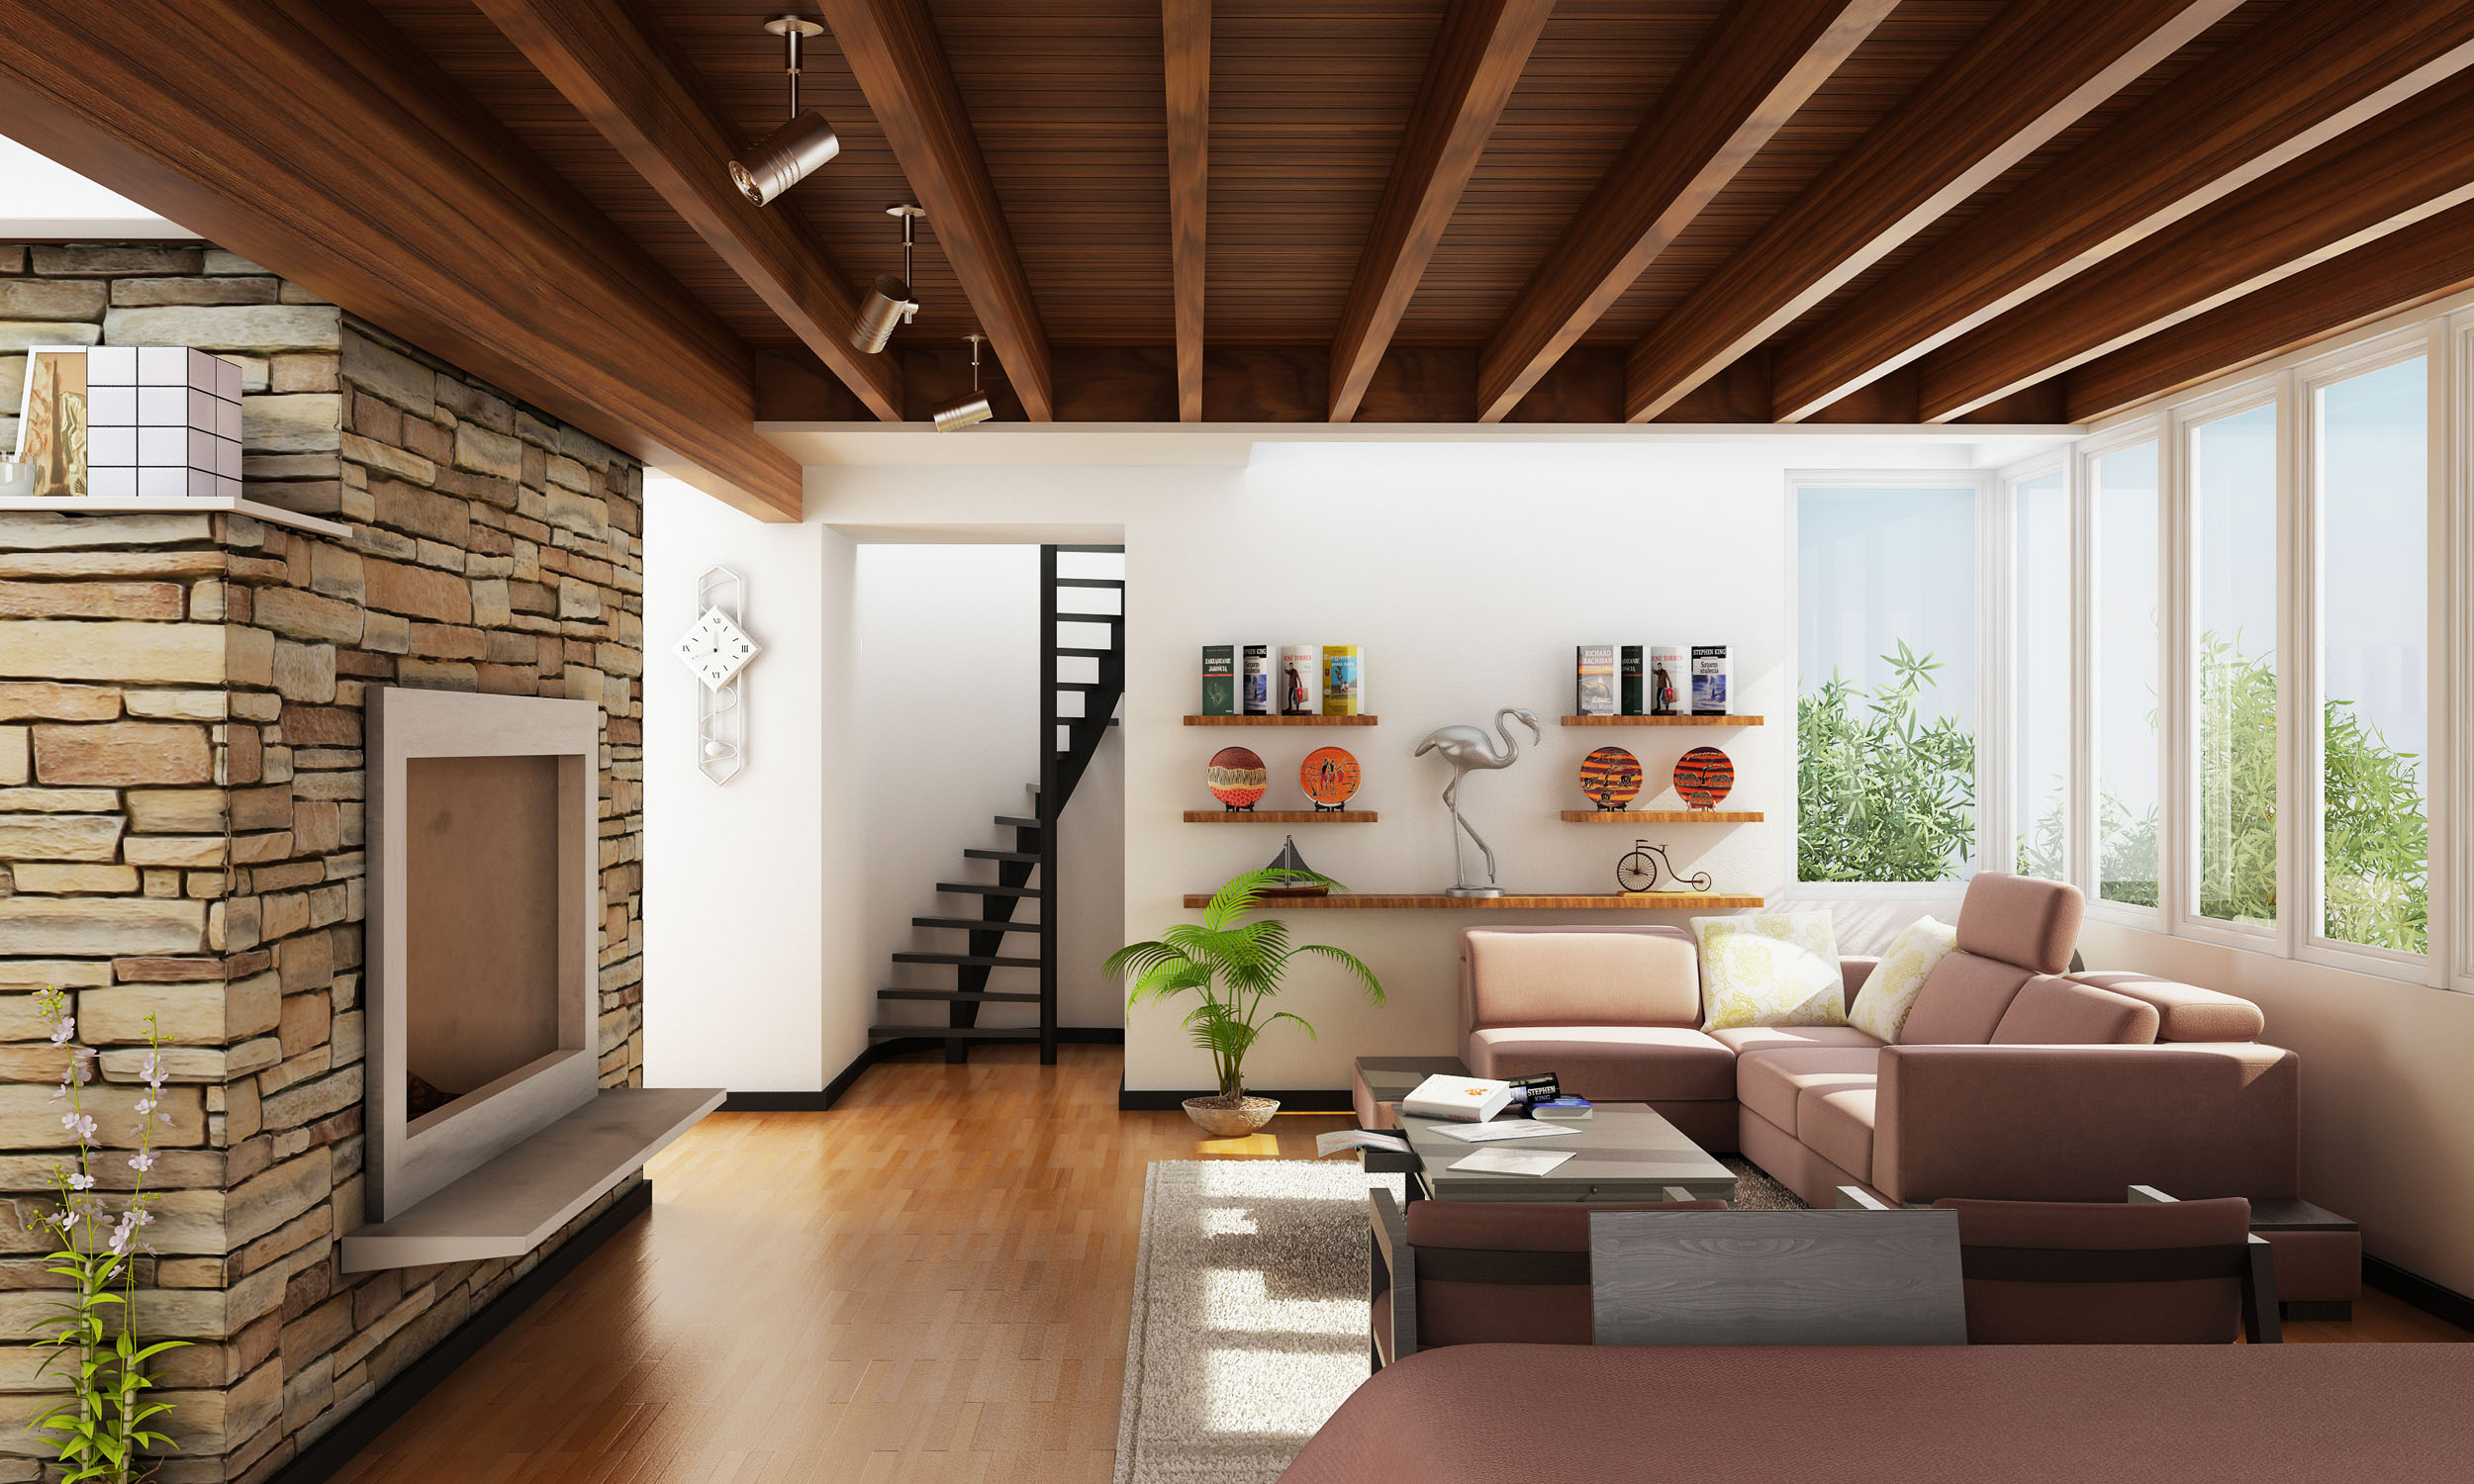 modern-natural-design-of-the-architectural-living-rooms-that-has-brown-modern-floor-can-be-decor-with-cream-sofas-can-add-the-elegant-touch-inside-the-living.jpg